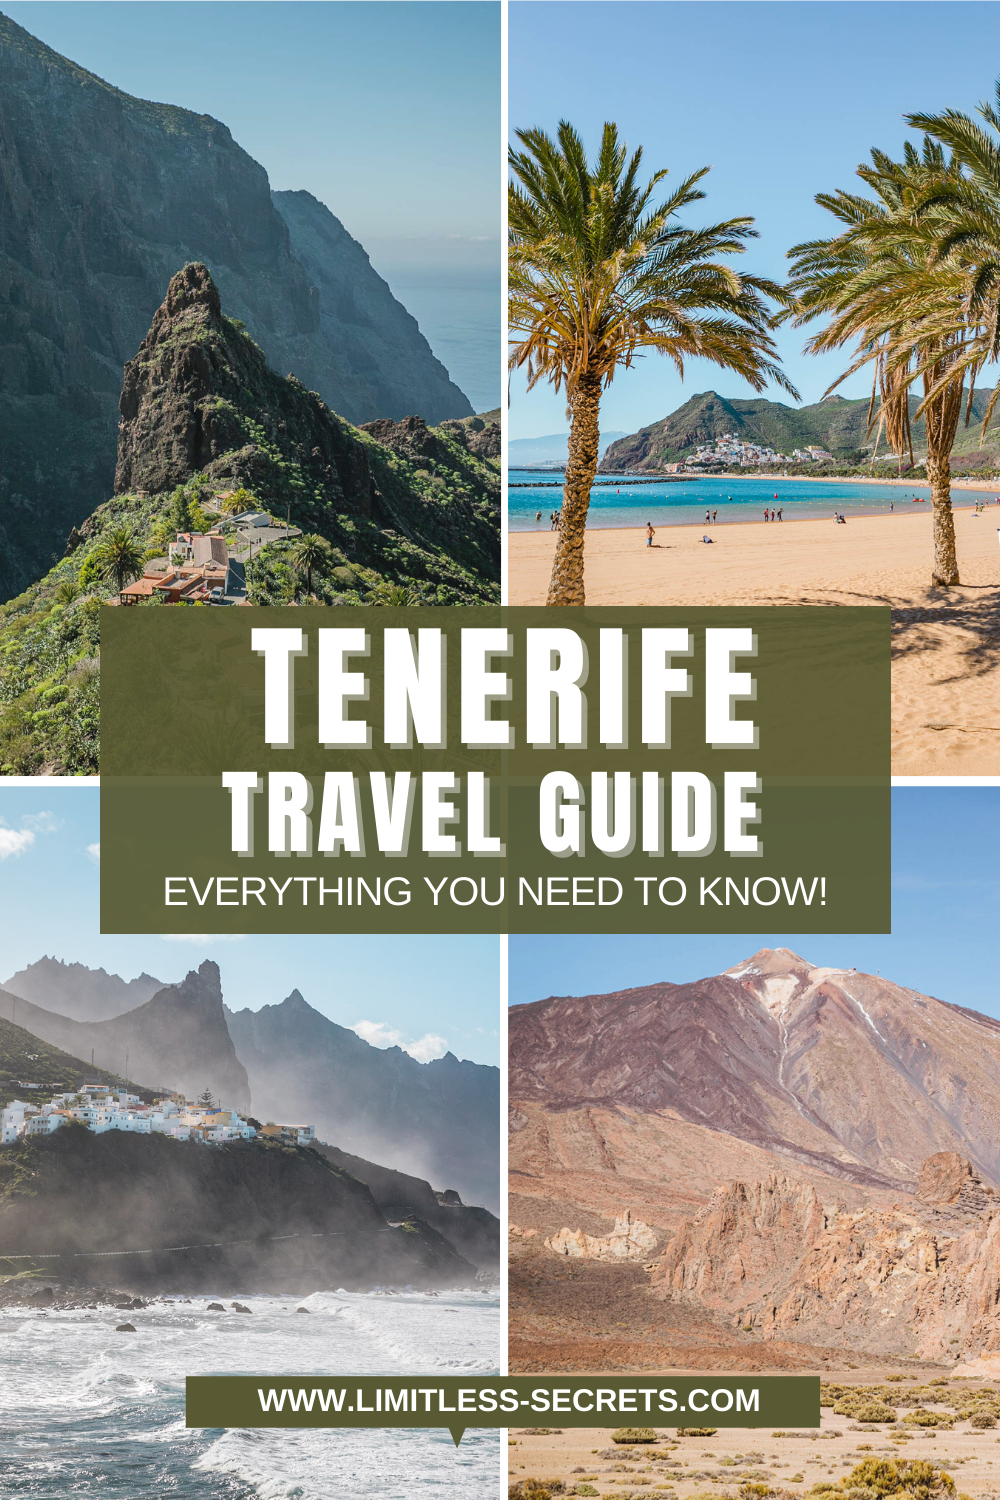 Tenerife in the Canary Islands is an amazing destination that you will love to discover! In this indispensable Tenerife Travel Guide I am answering the most frequent questions you might have about Tenerife. Get to know when to go to Tenerife, how to reach Tenerife, how long you should stay in Tenerife, what are the best things to do in Tenerife, where to stay in Tenerife and much more! Tenerife trip | Tenerife photography | Everything you need to know about Tenerife | Activities in Tenerife